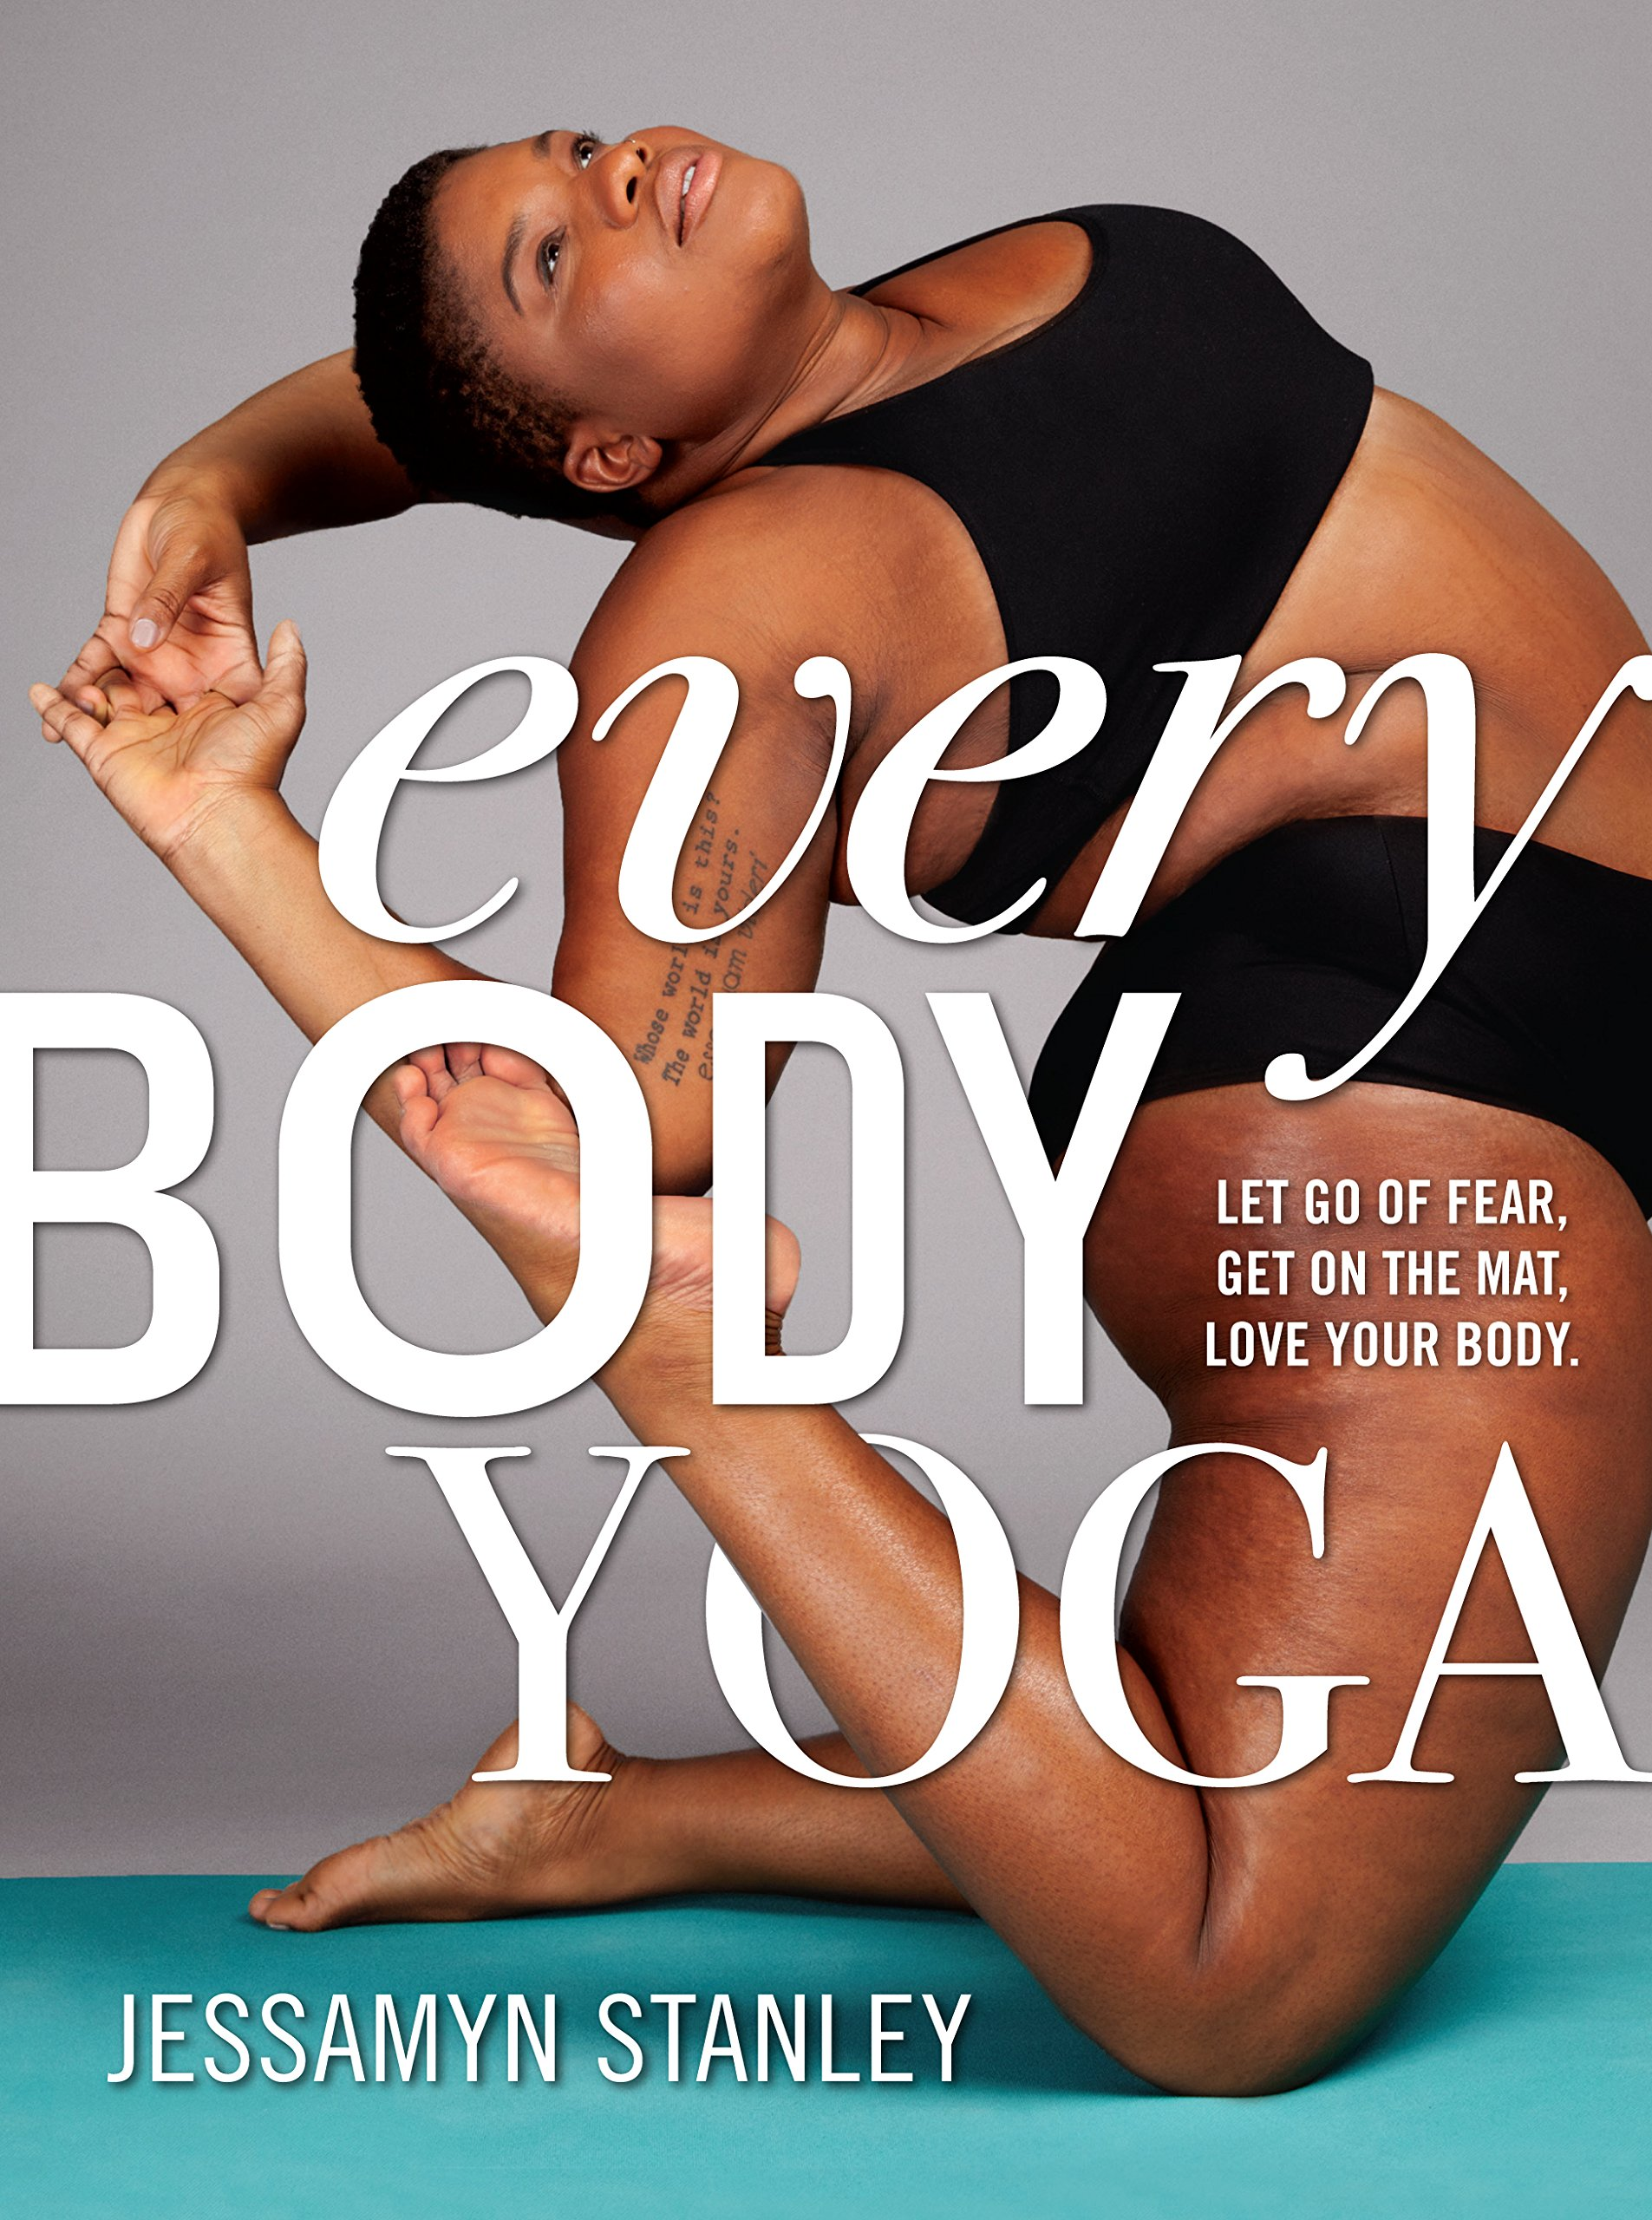 Every Body Yoga: Let Go of Fear, Get on the Mat. Love Your Body